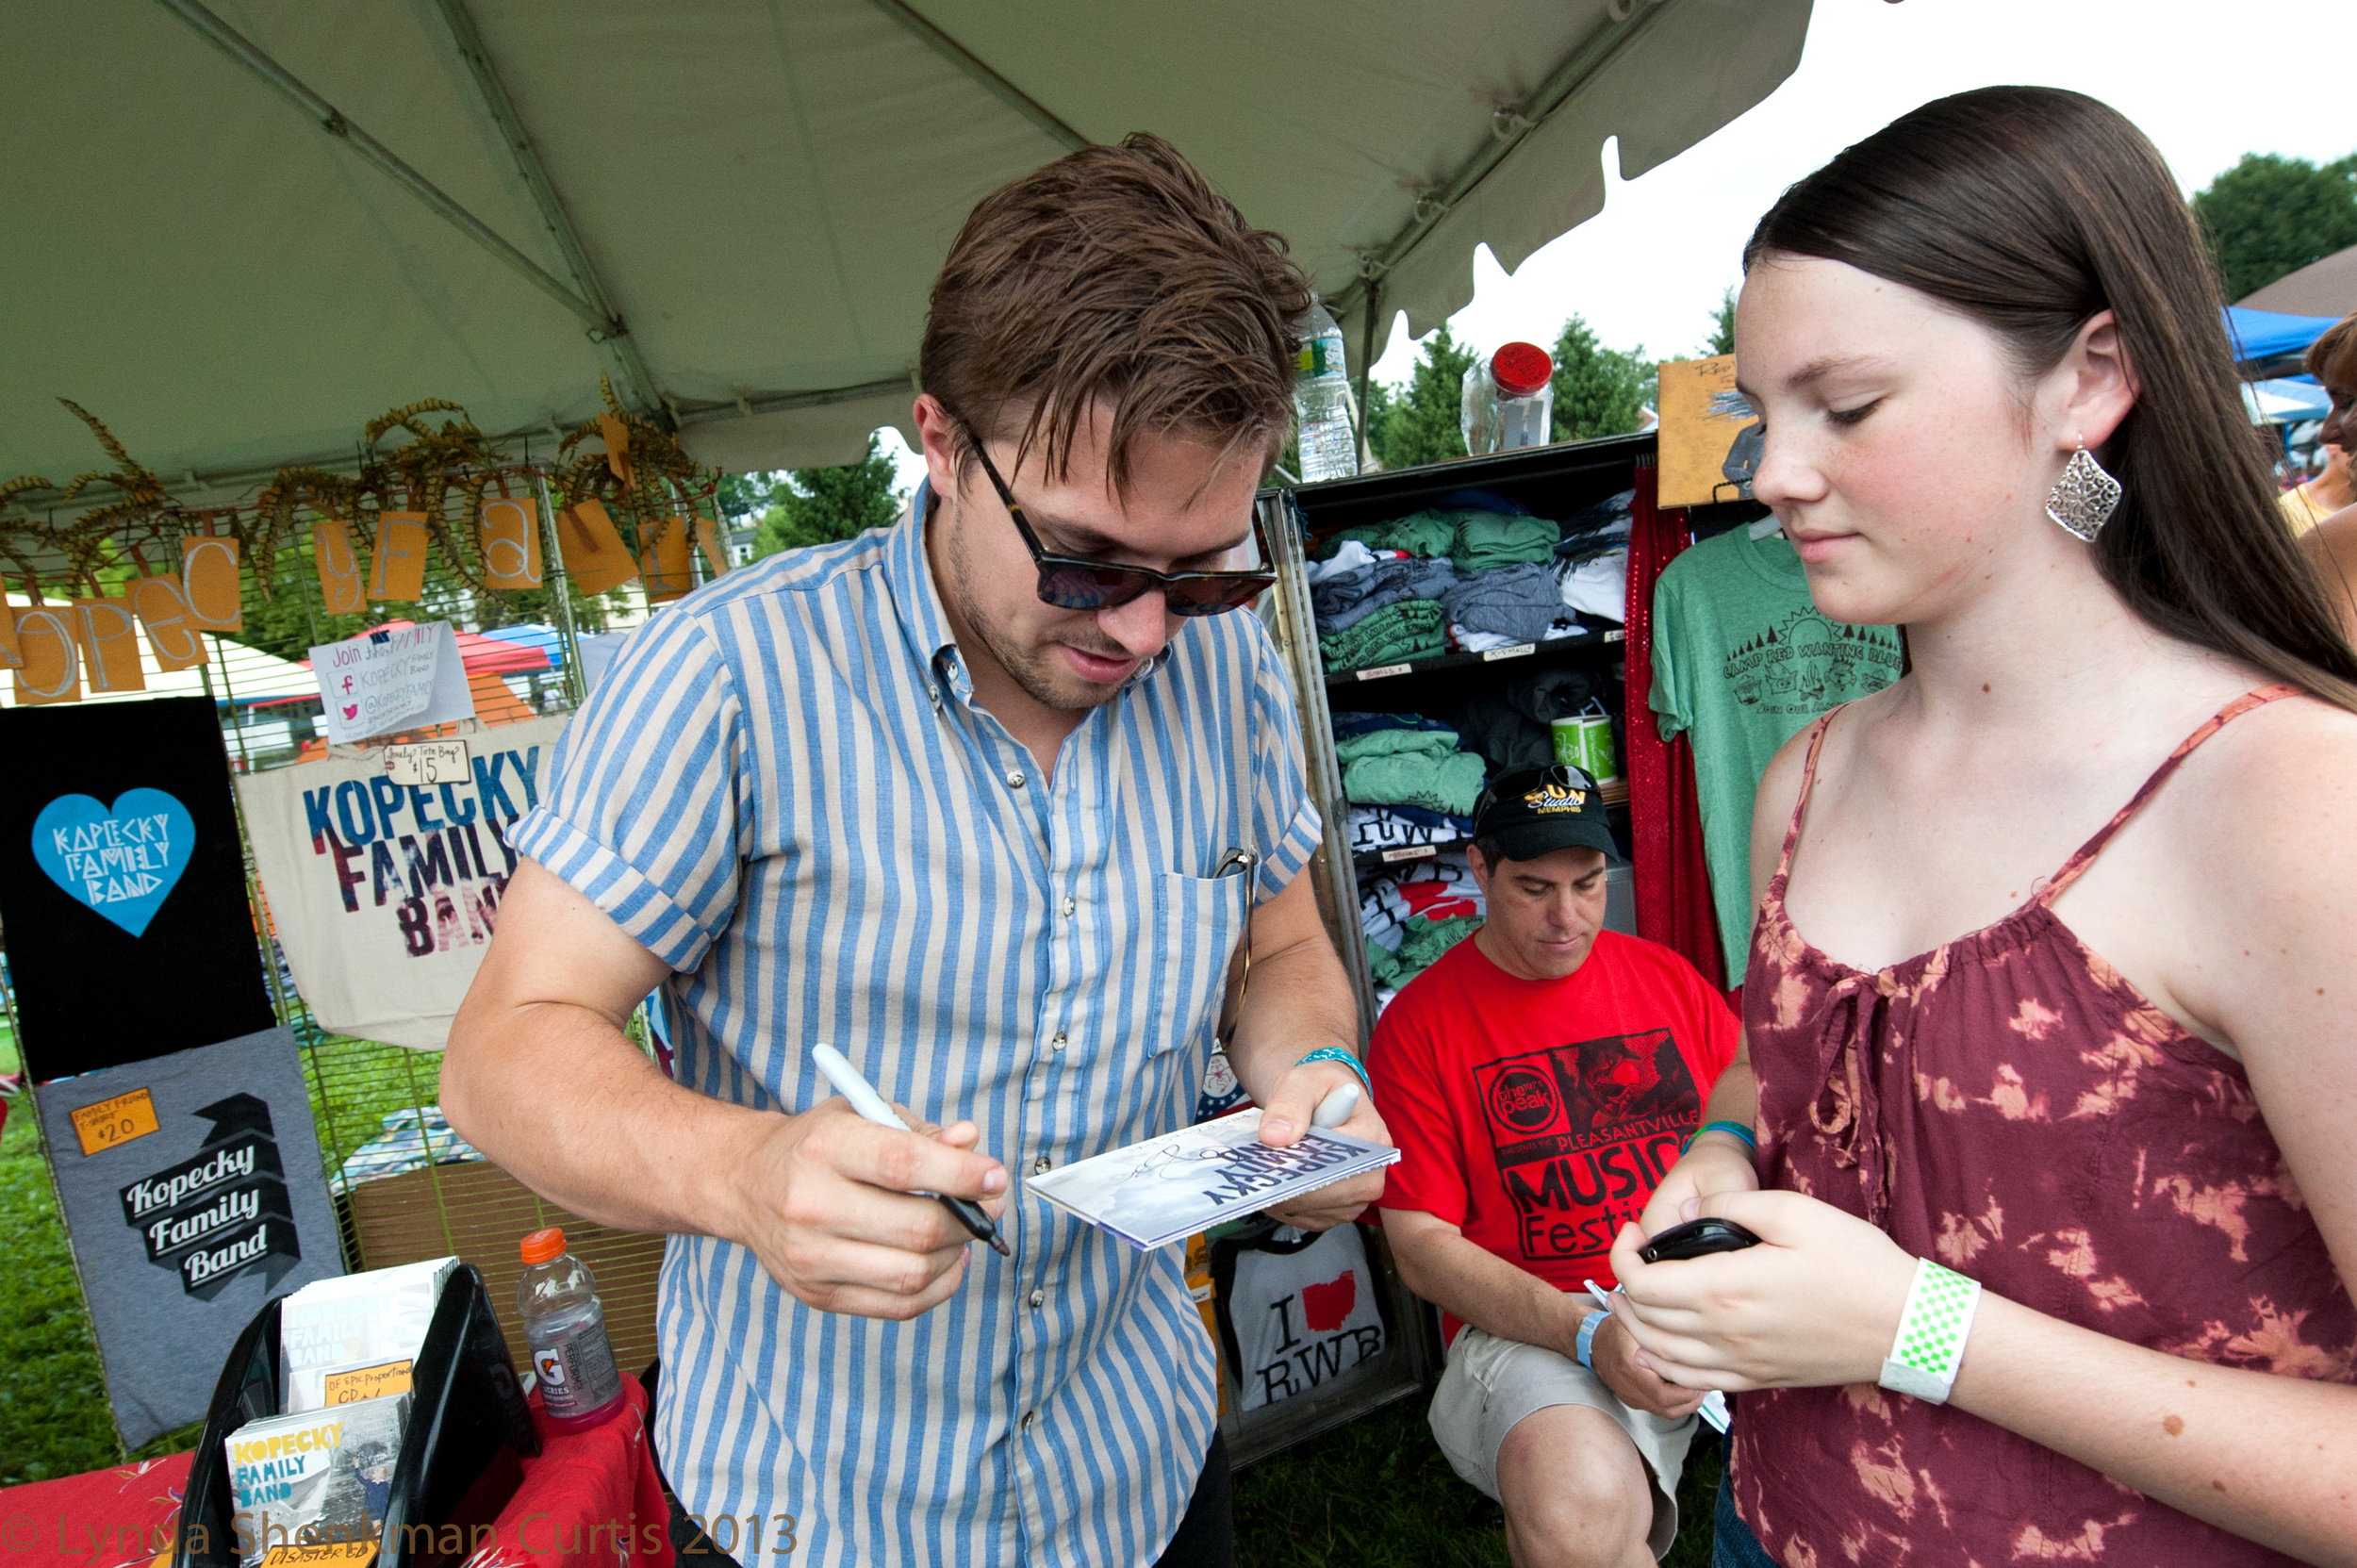 Autographs at the merch tent with the Kopecky Family Band © 2013 Lynda Shenkman Curtis